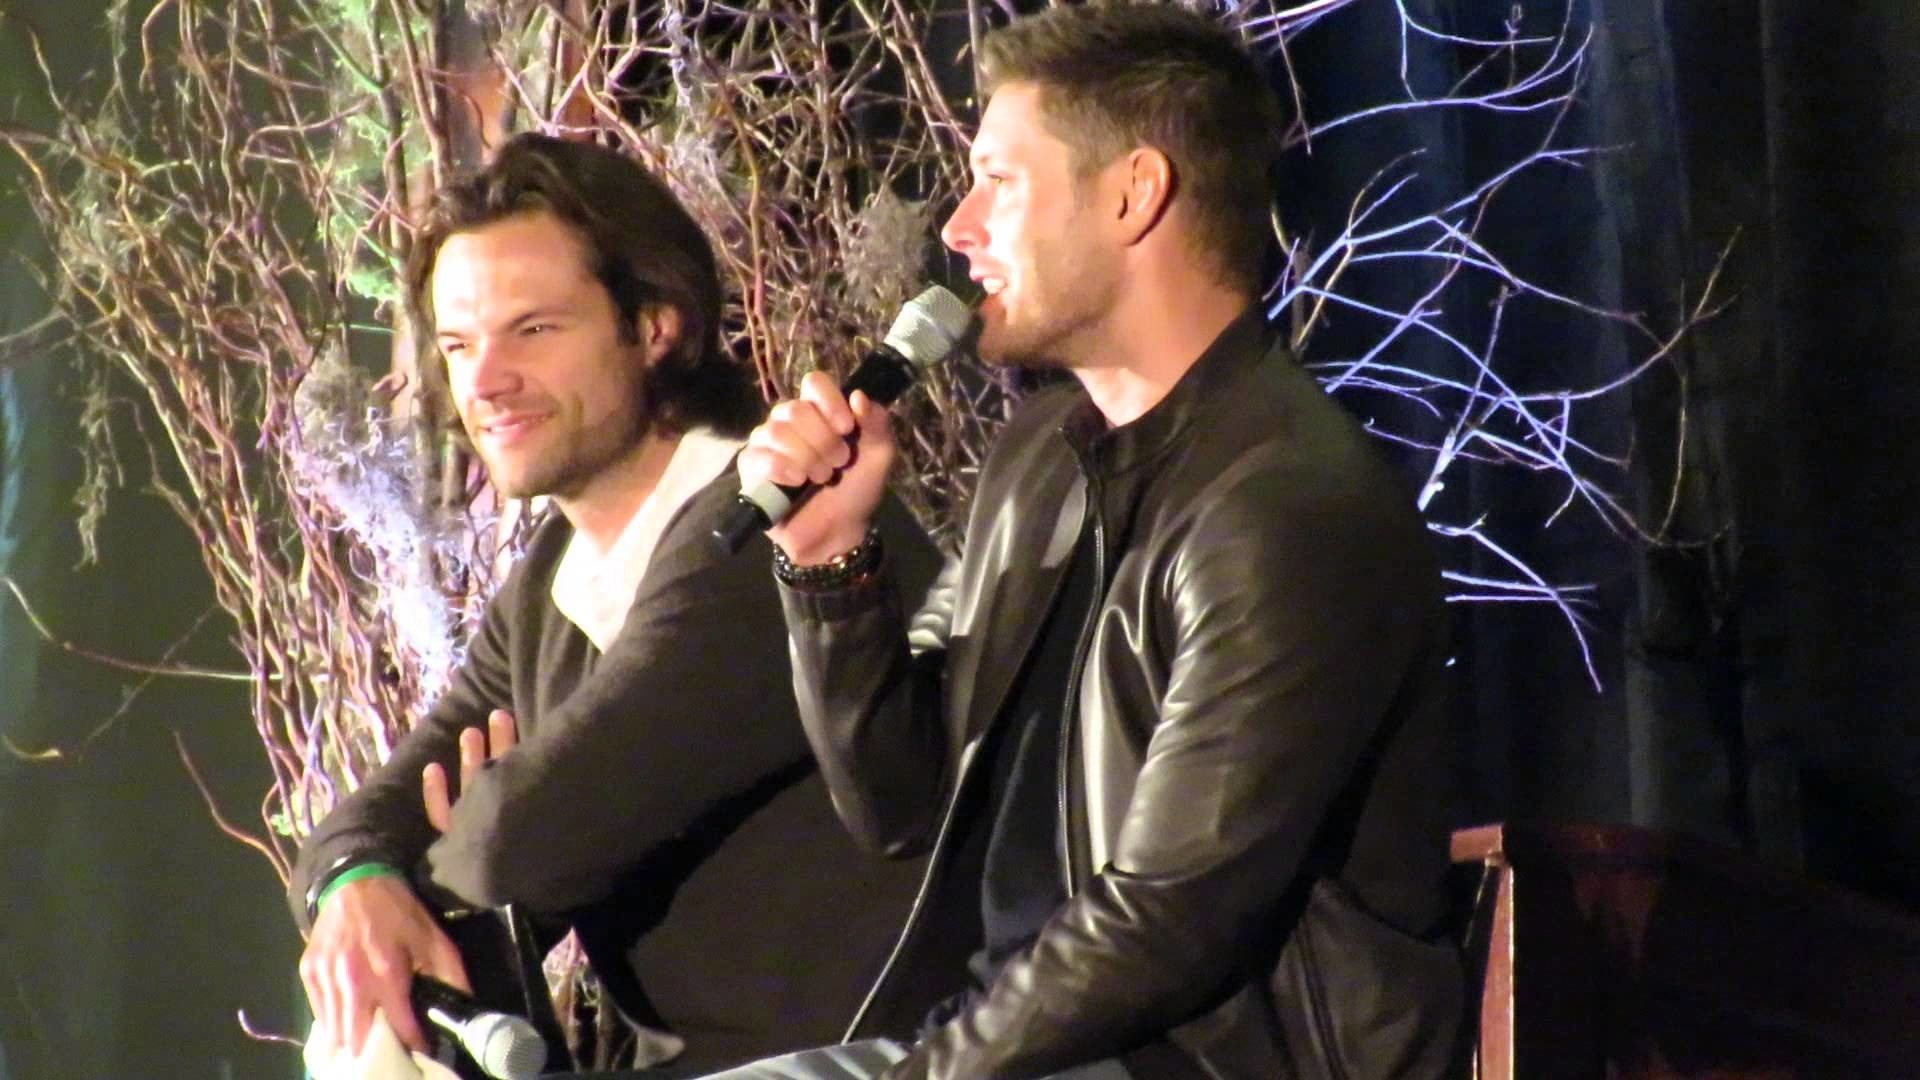 Jared Padalecki and Jensen Ackles odd photo ops – Supernatural ChiCon 2015  – YouTube